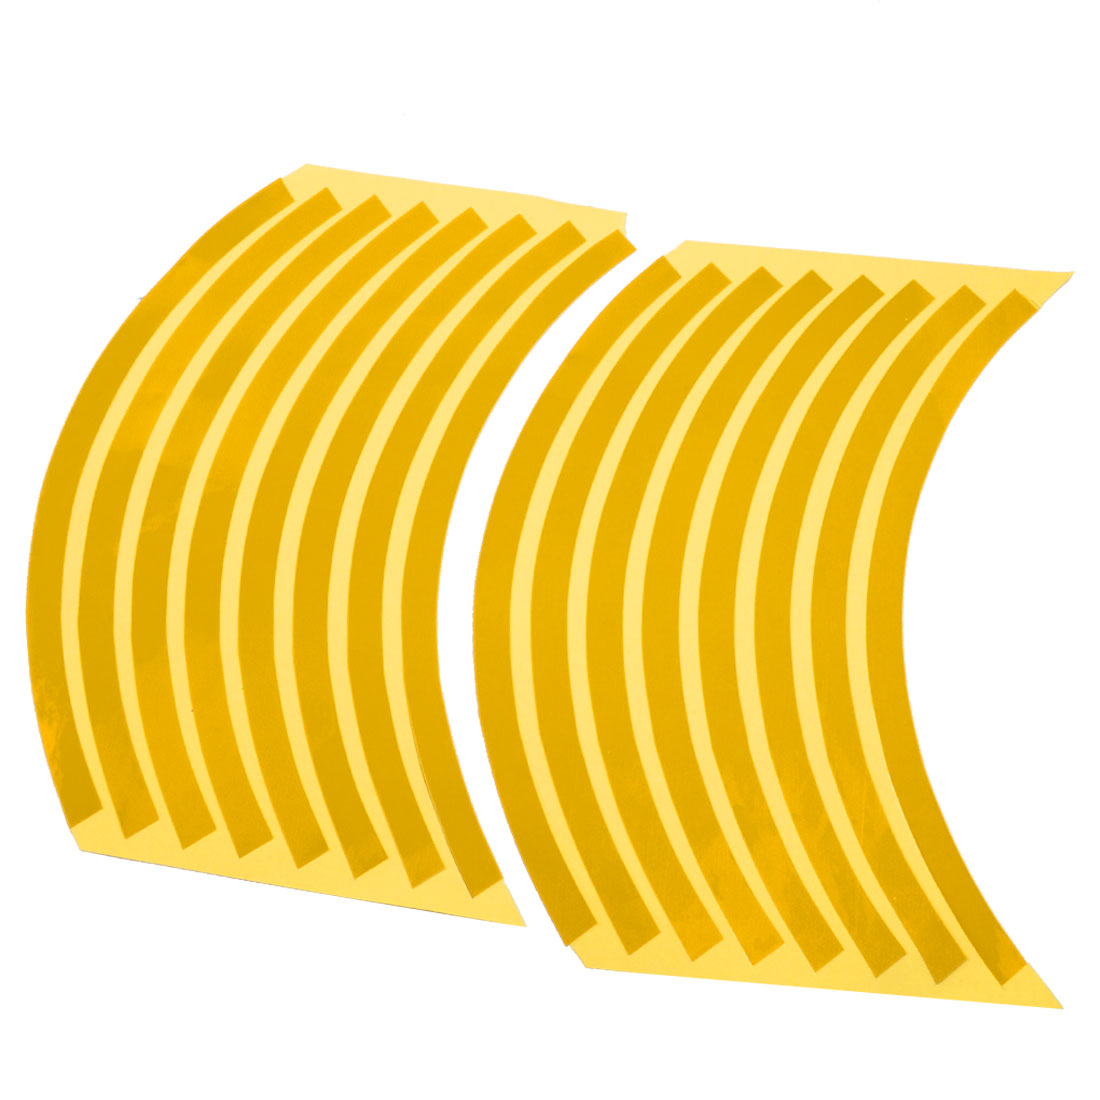 "7.7"" Length Motorcycle Wheel Rim Tape Stickers Stripes Yellow 16 Pcs"